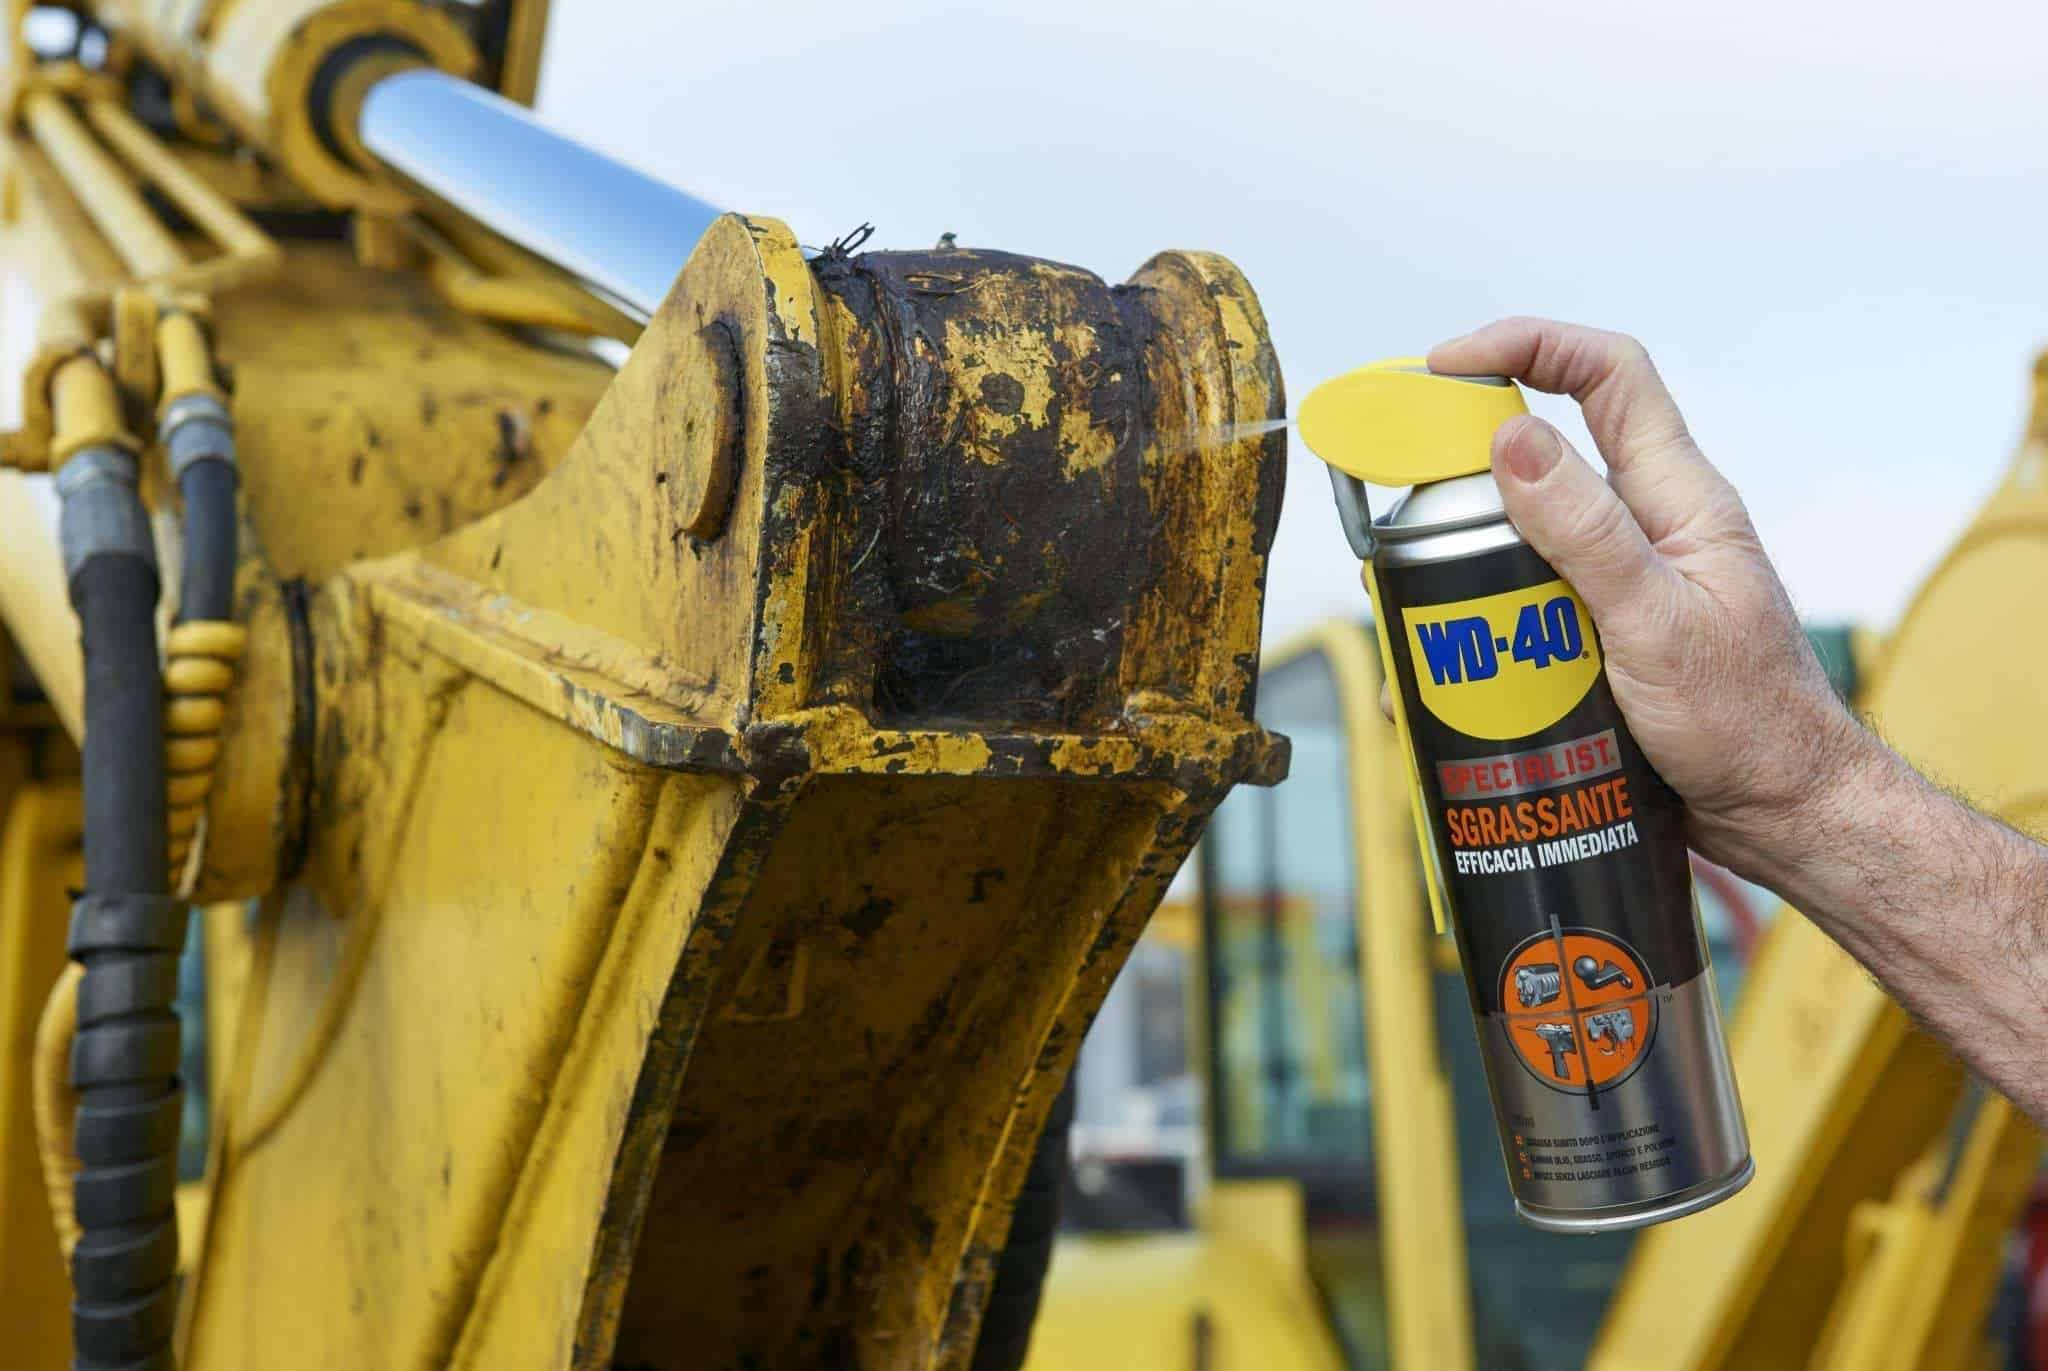 wd 40 machine reinigen super degraissant